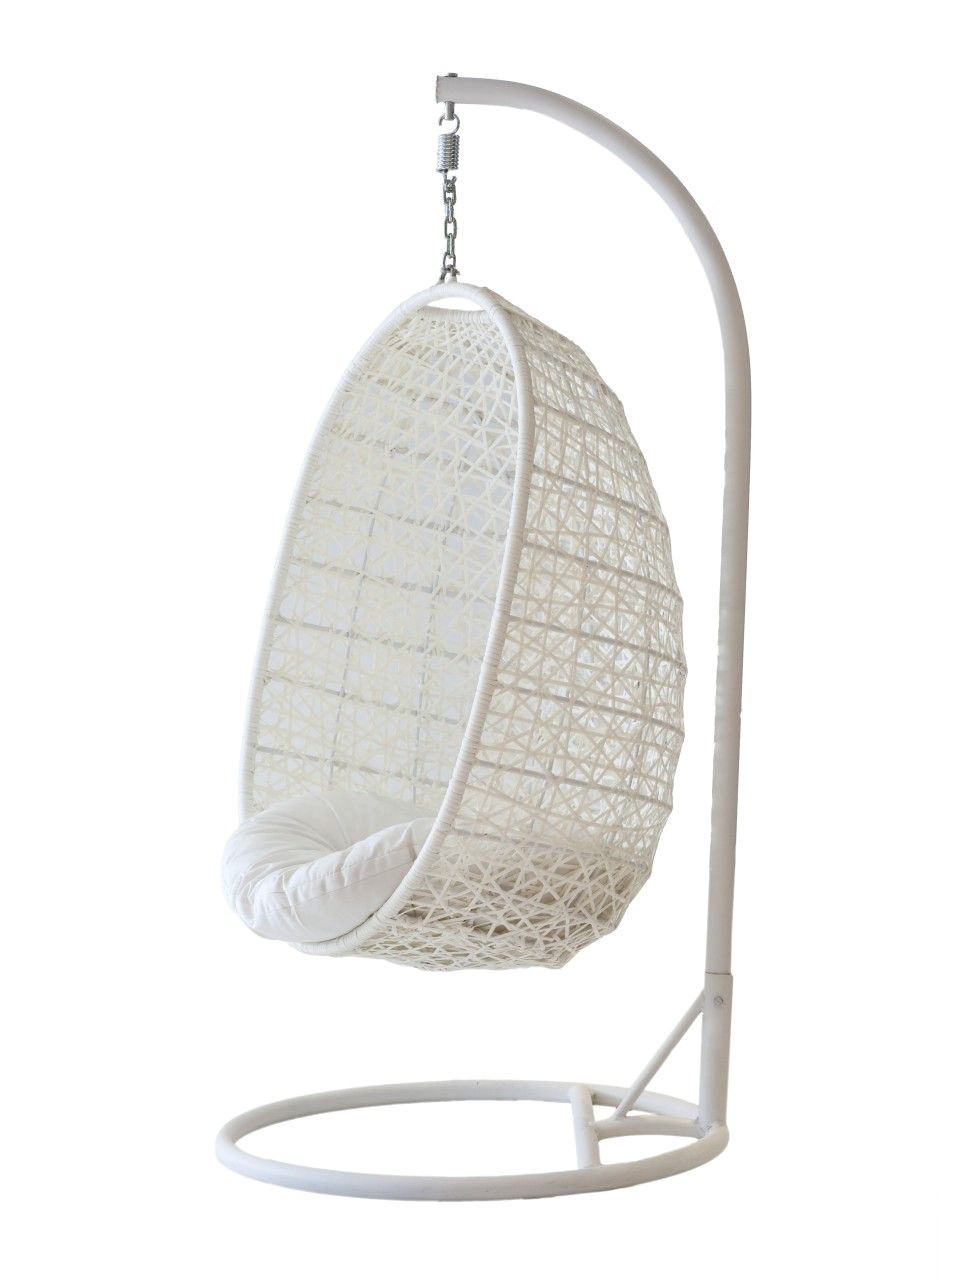 affordable hanging chair for bedroom ikea cool hanging chairs for indoor and within ikea bedroom at